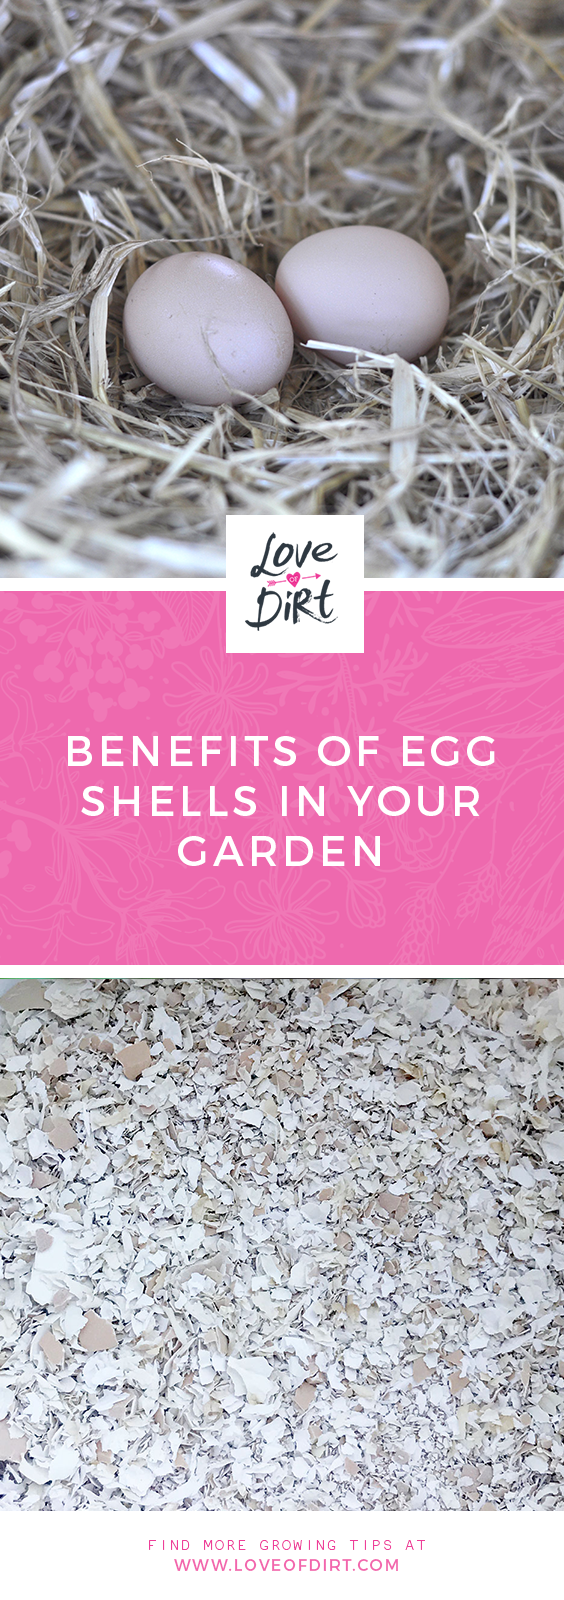 Benefits of Egg Shells in your veggie patch